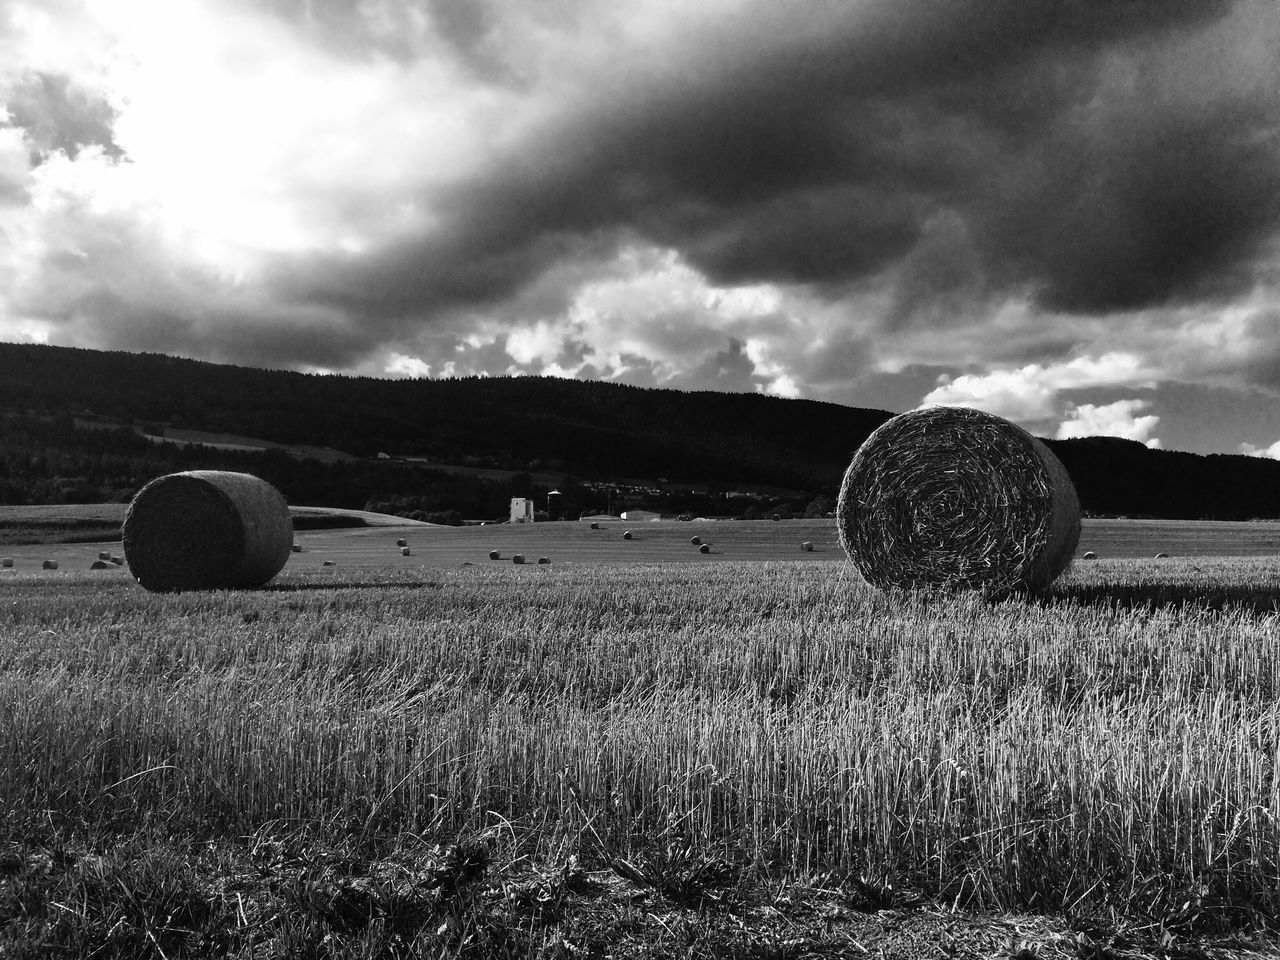 field, bale, agriculture, hay bale, harvesting, tranquil scene, tranquility, landscape, hay, rural scene, farm, grass, rolled up, sky, nature, outdoors, scenics, no people, beauty in nature, cloud - sky, day, tree